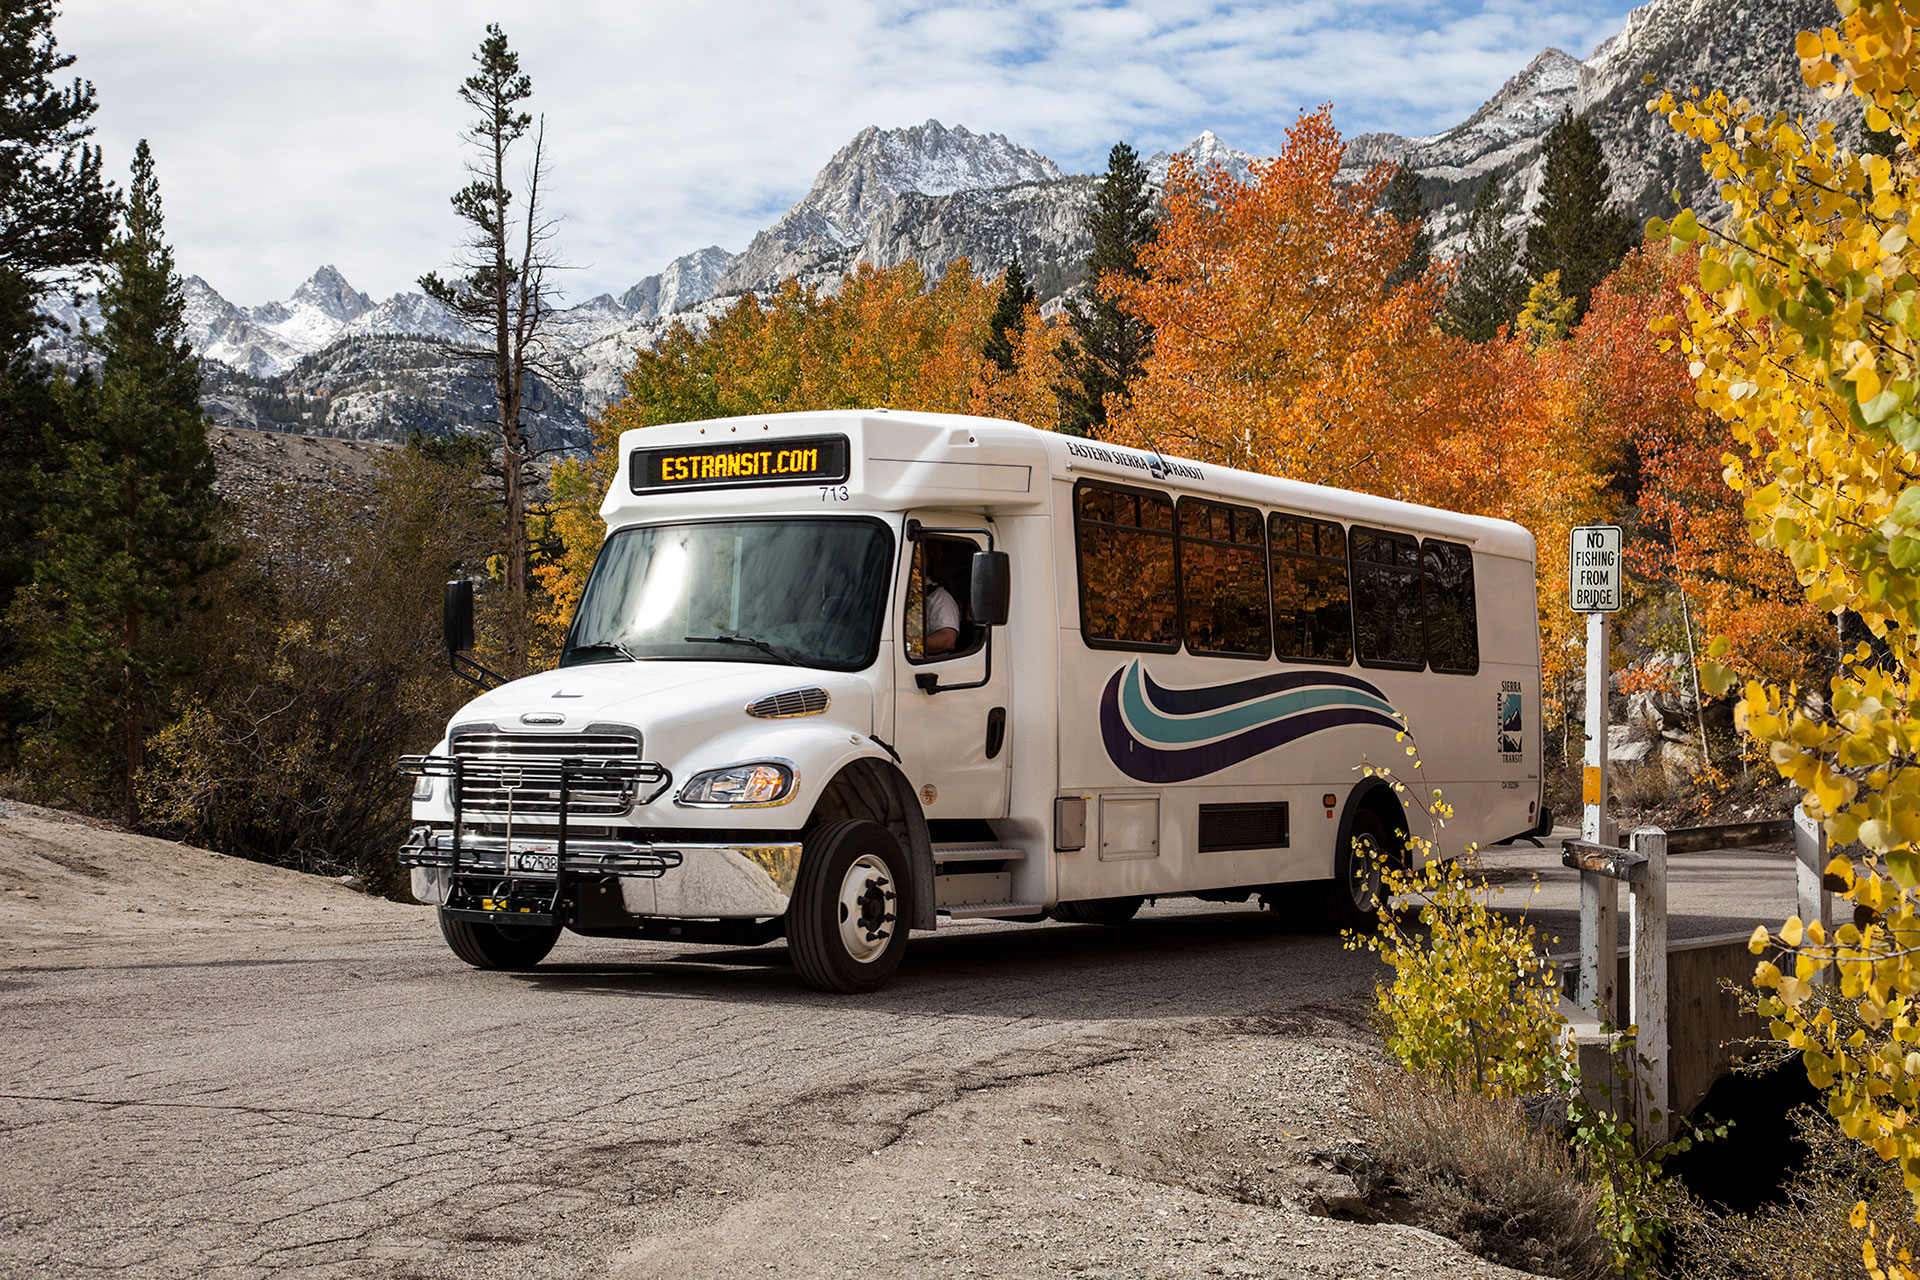 Eastern Sierra Transit is one of the outstanding rural transit companies that services the Pacific Crest Trail. We appreciate them so much. Photo courtesy of Eastern Sierra Transit.